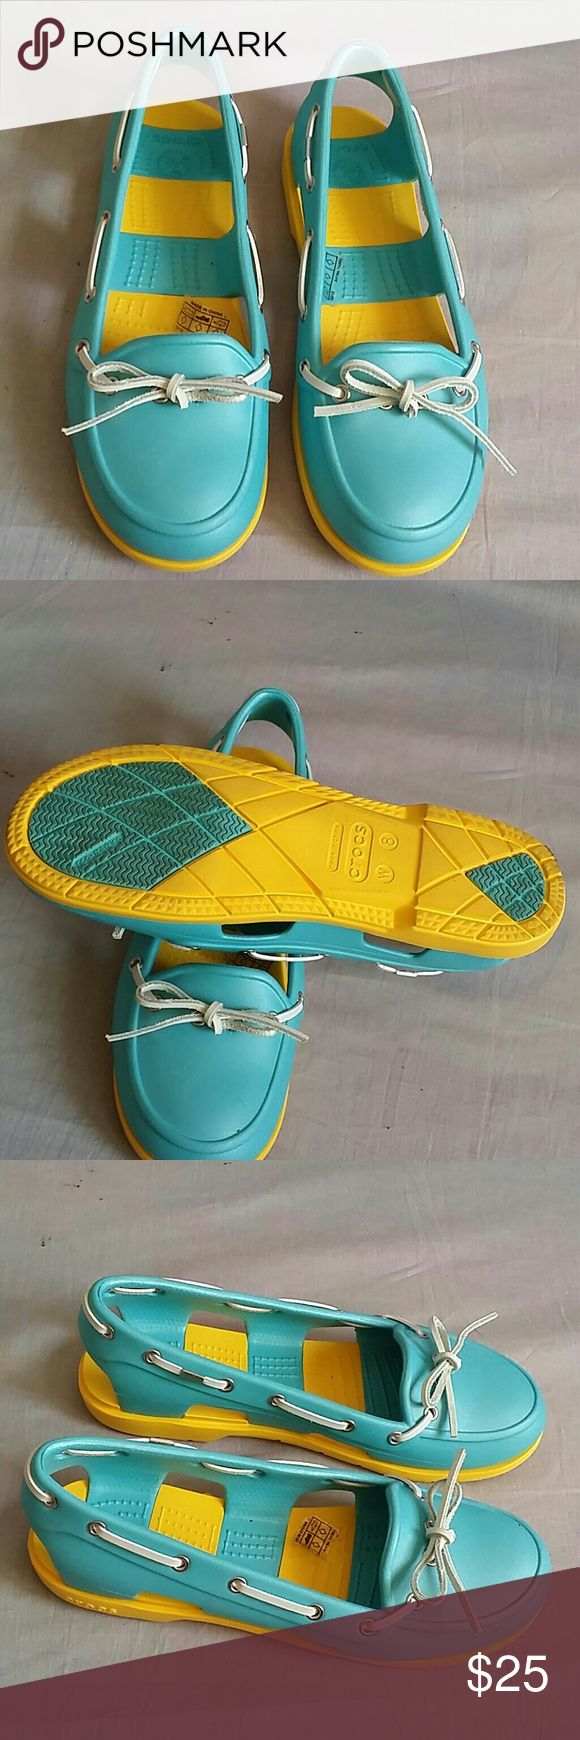 Crocs Shoes Size 8 W Rubber Slip-on Item used for few times only, NO PETS AND SMOKE FREE HOME. CROCS Shoes